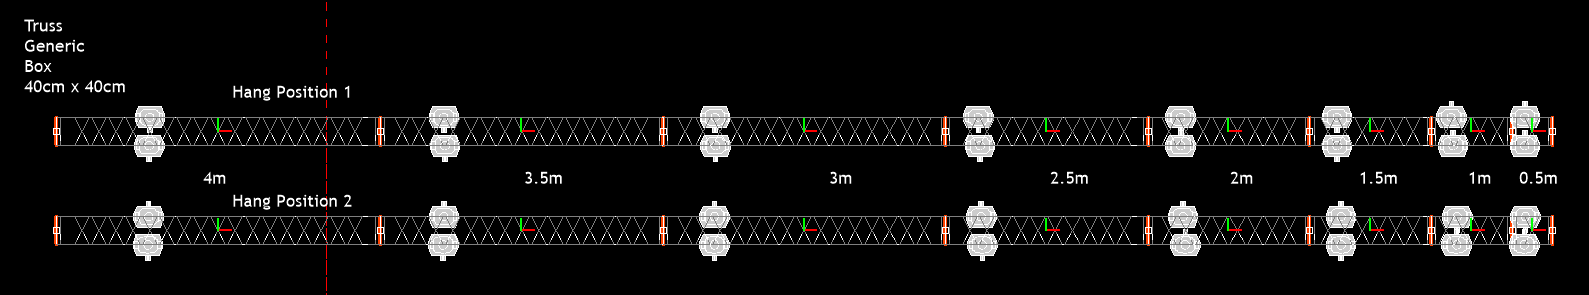 Generic40cm Truss Fixture Direction.png